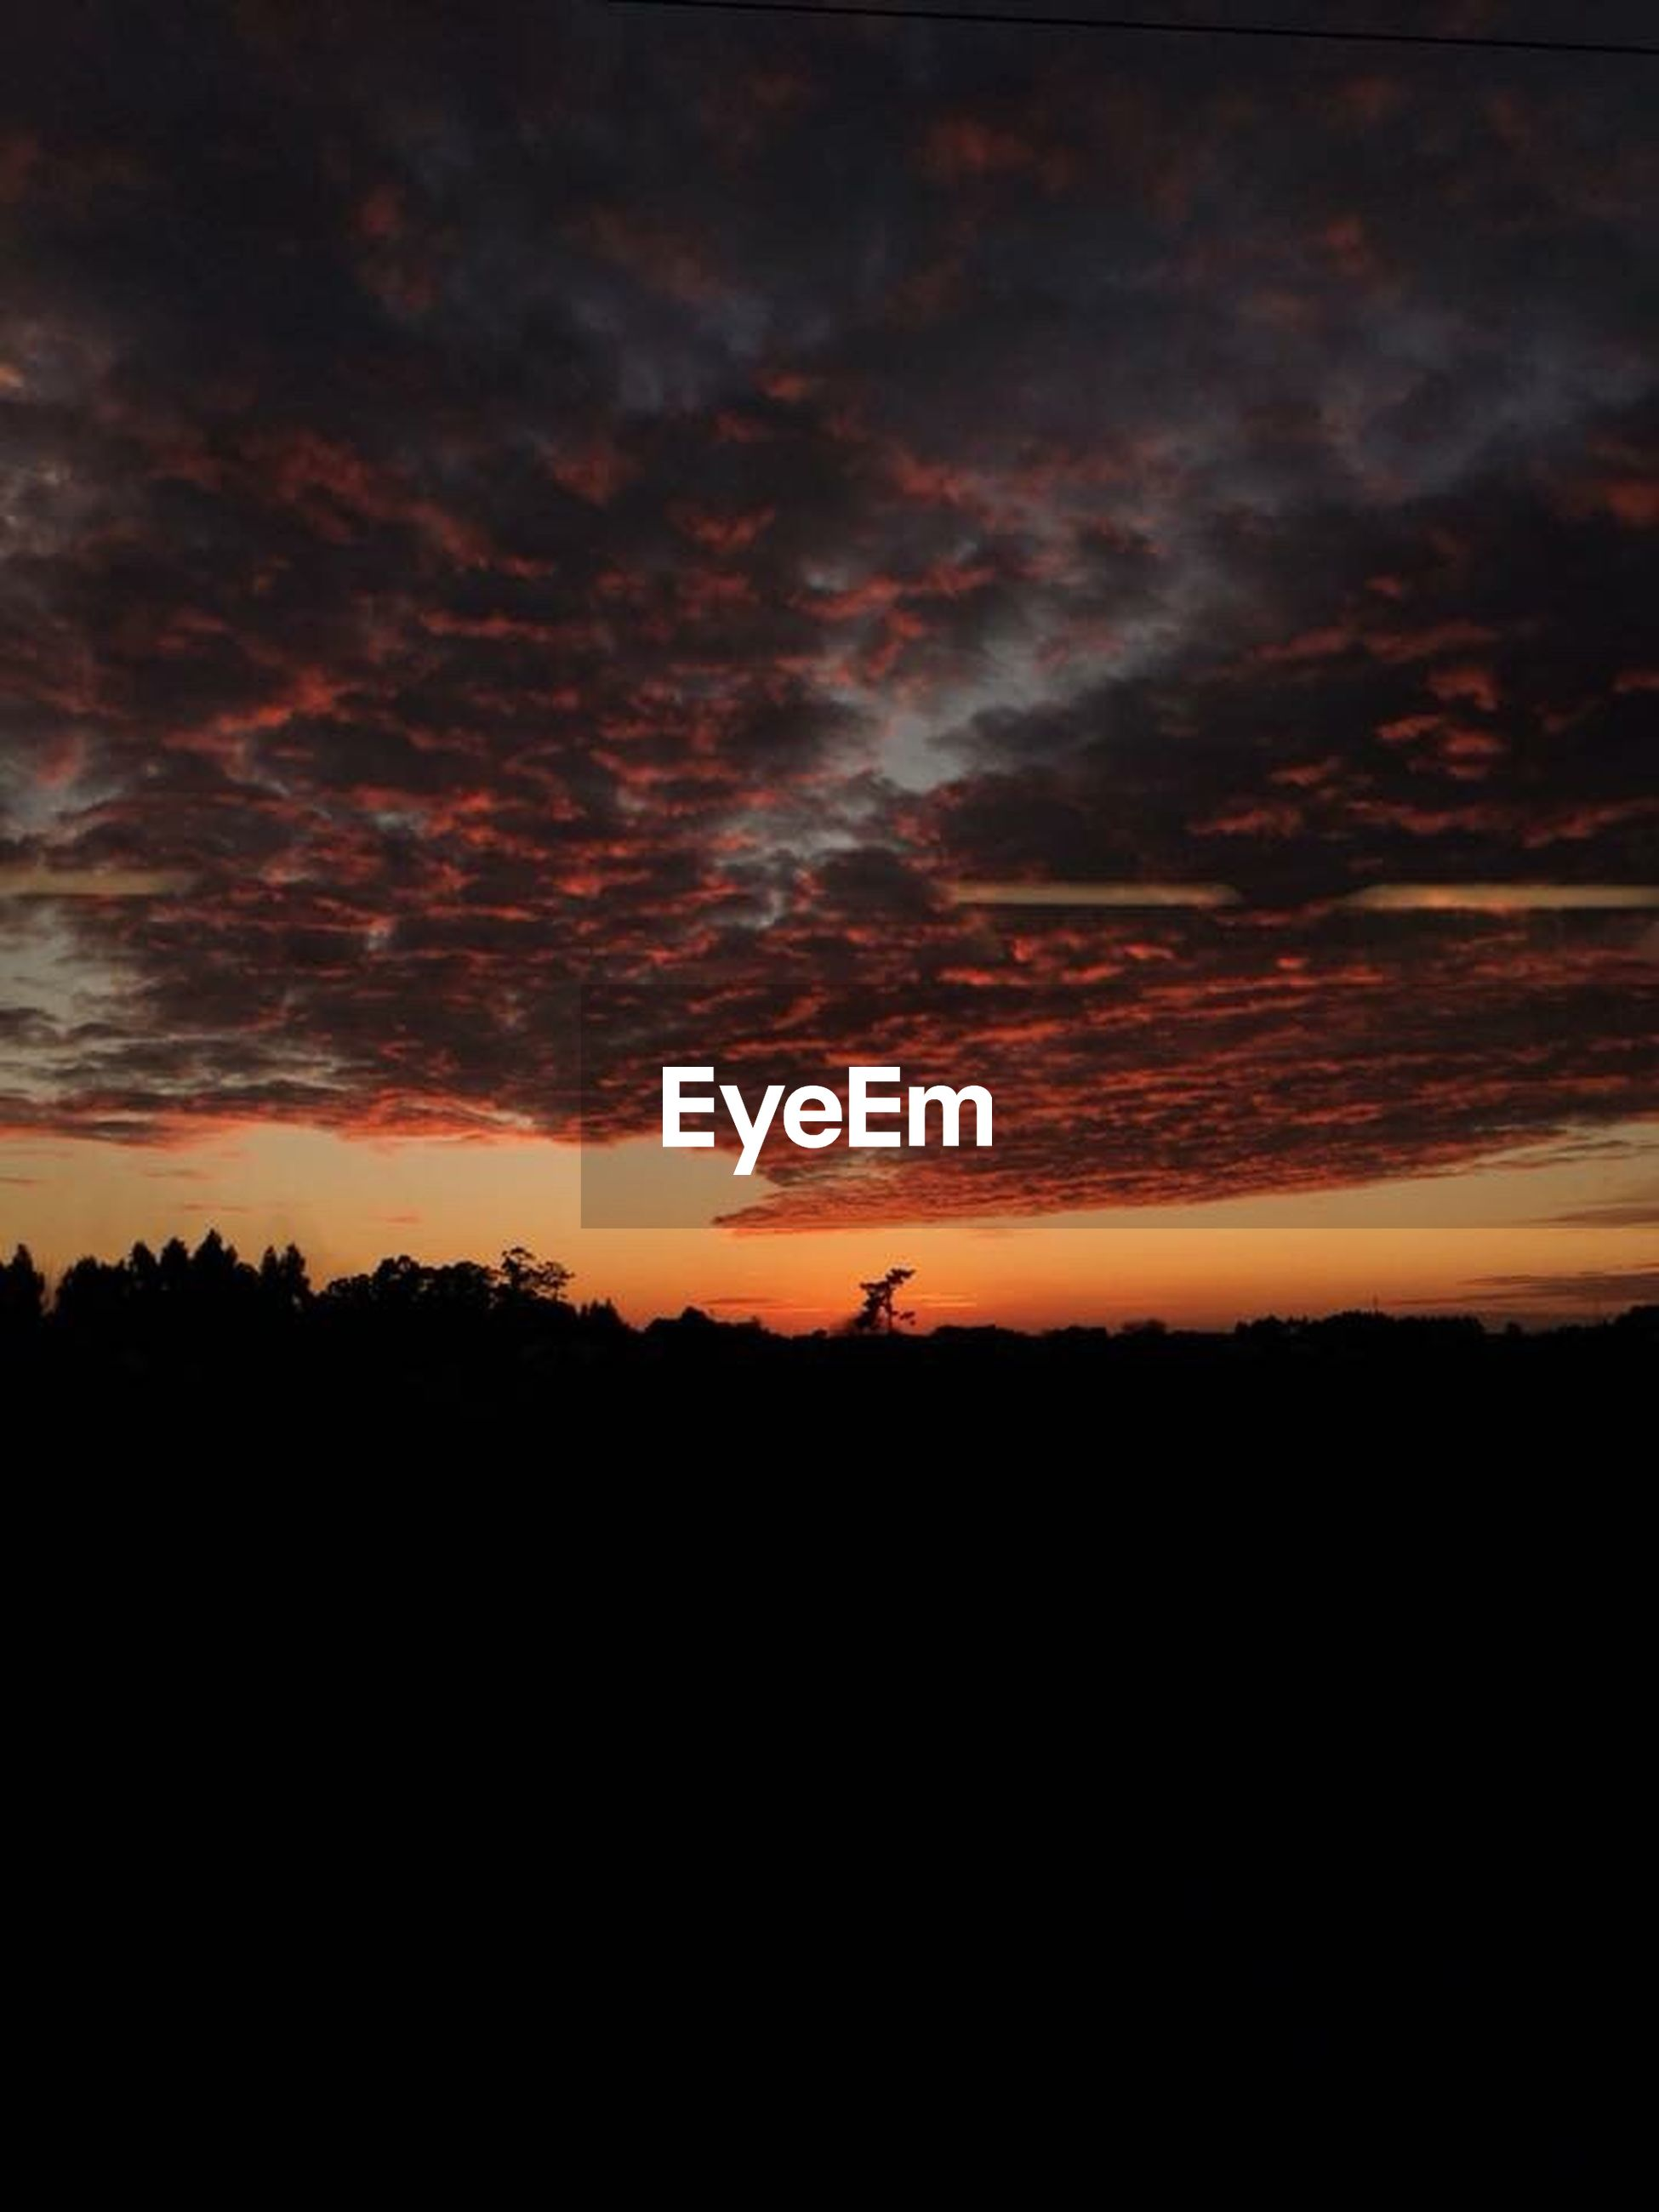 sky, sunset, cloud - sky, silhouette, beauty in nature, orange color, tranquility, scenics - nature, nature, tranquil scene, environment, no people, dark, dramatic sky, idyllic, landscape, outdoors, copy space, love, majestic